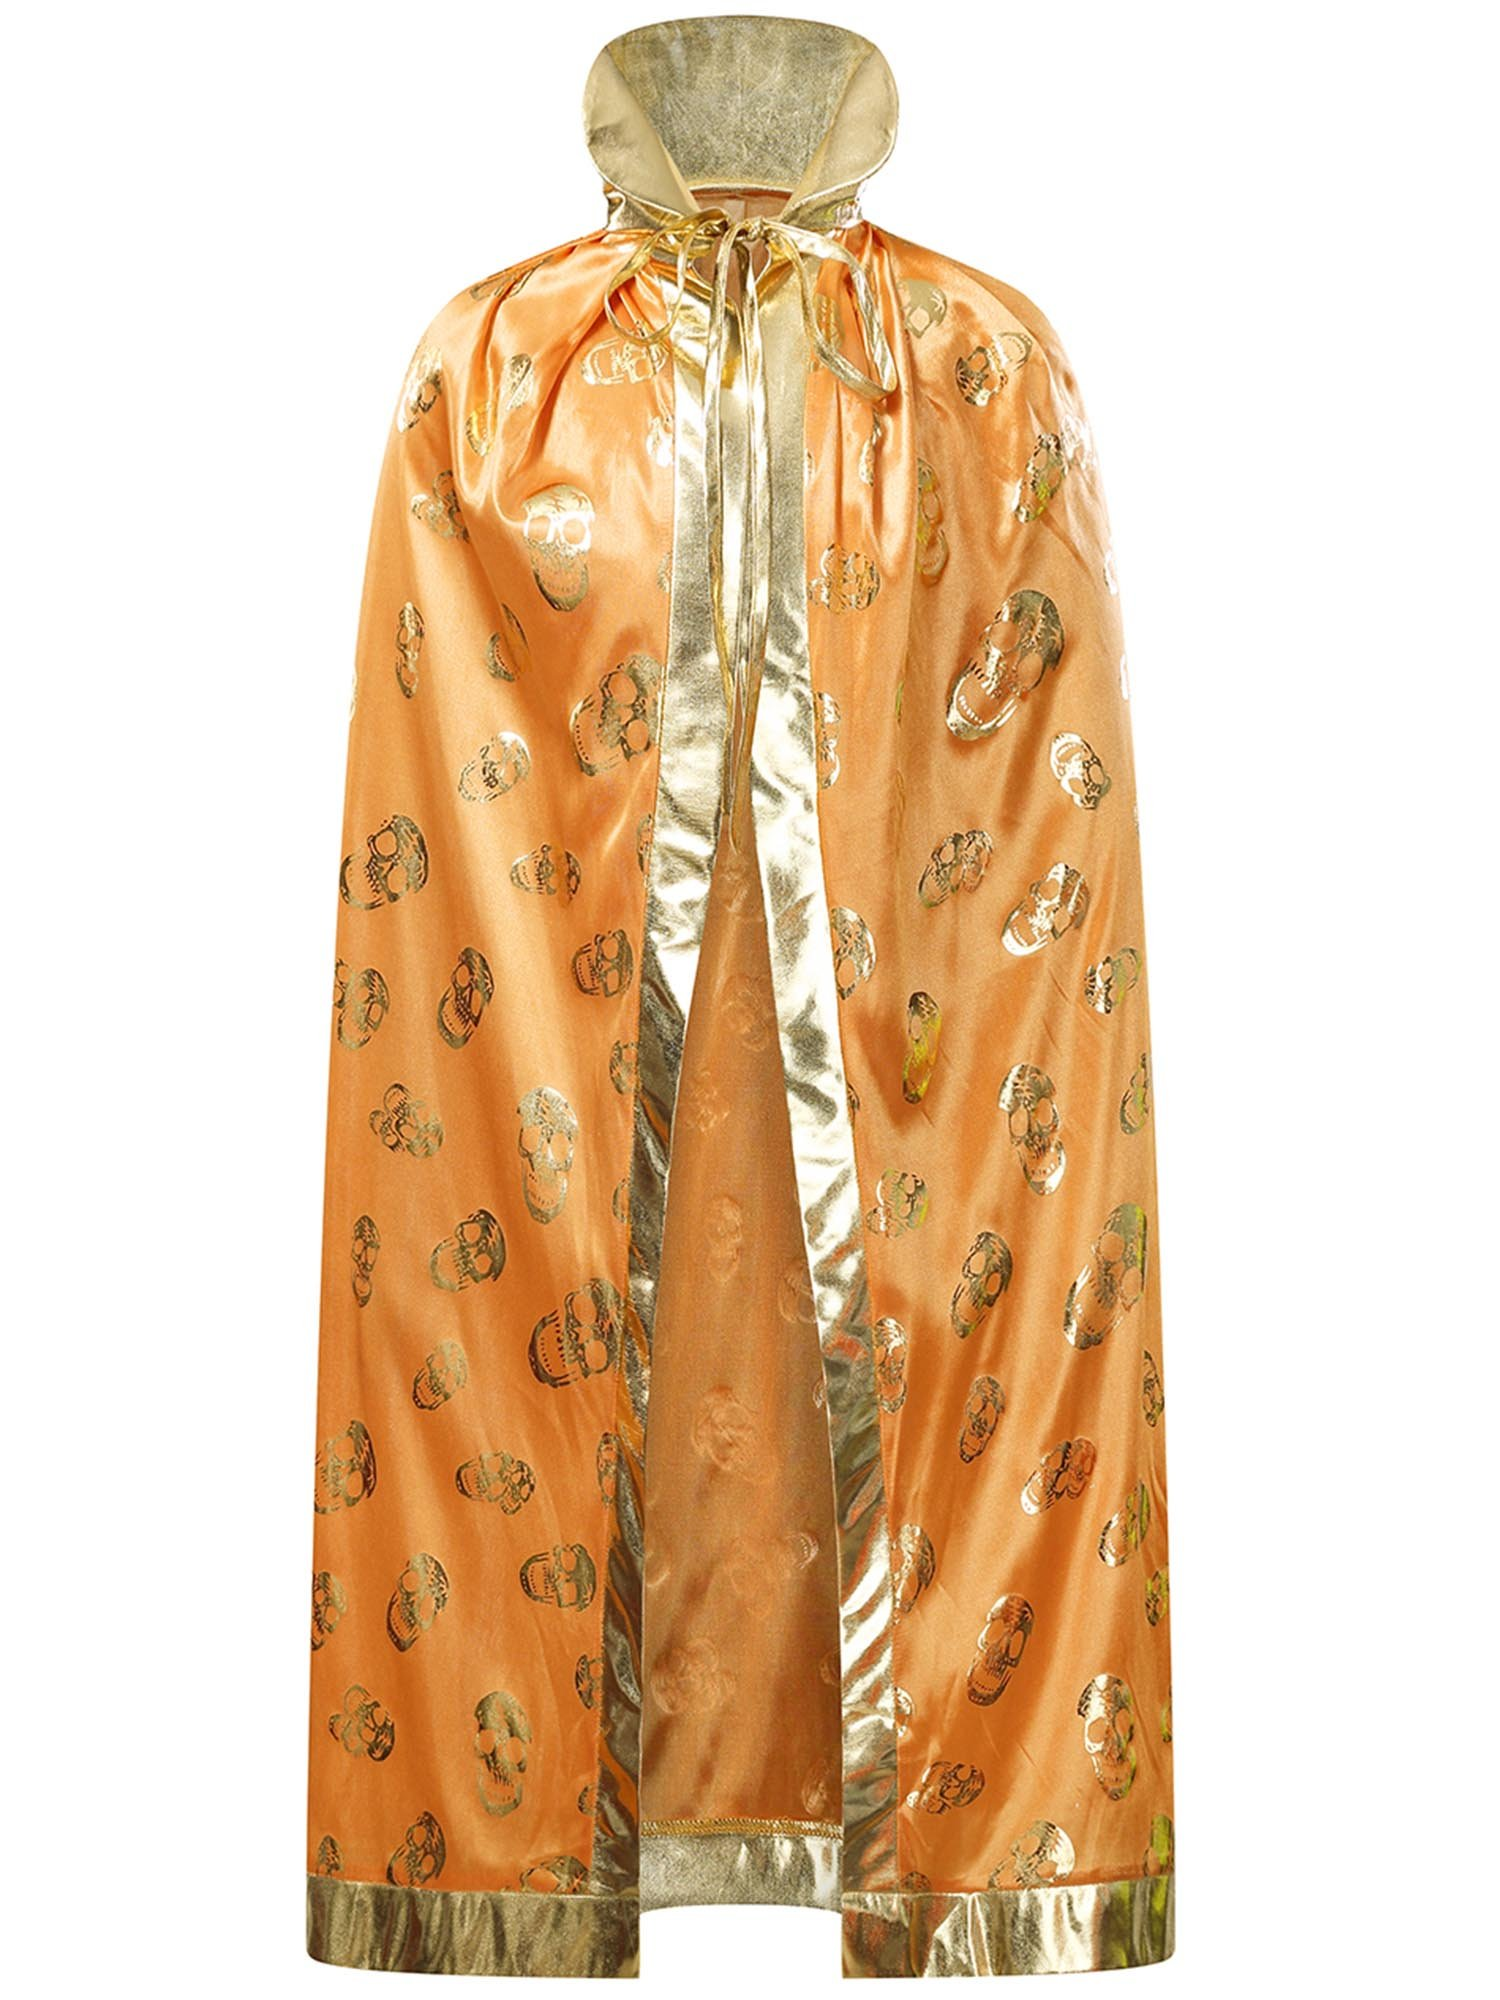 Halloween Cape Kids,KIRA Funny Costume Ankle Length Cape Role Play Costumes 17078-2